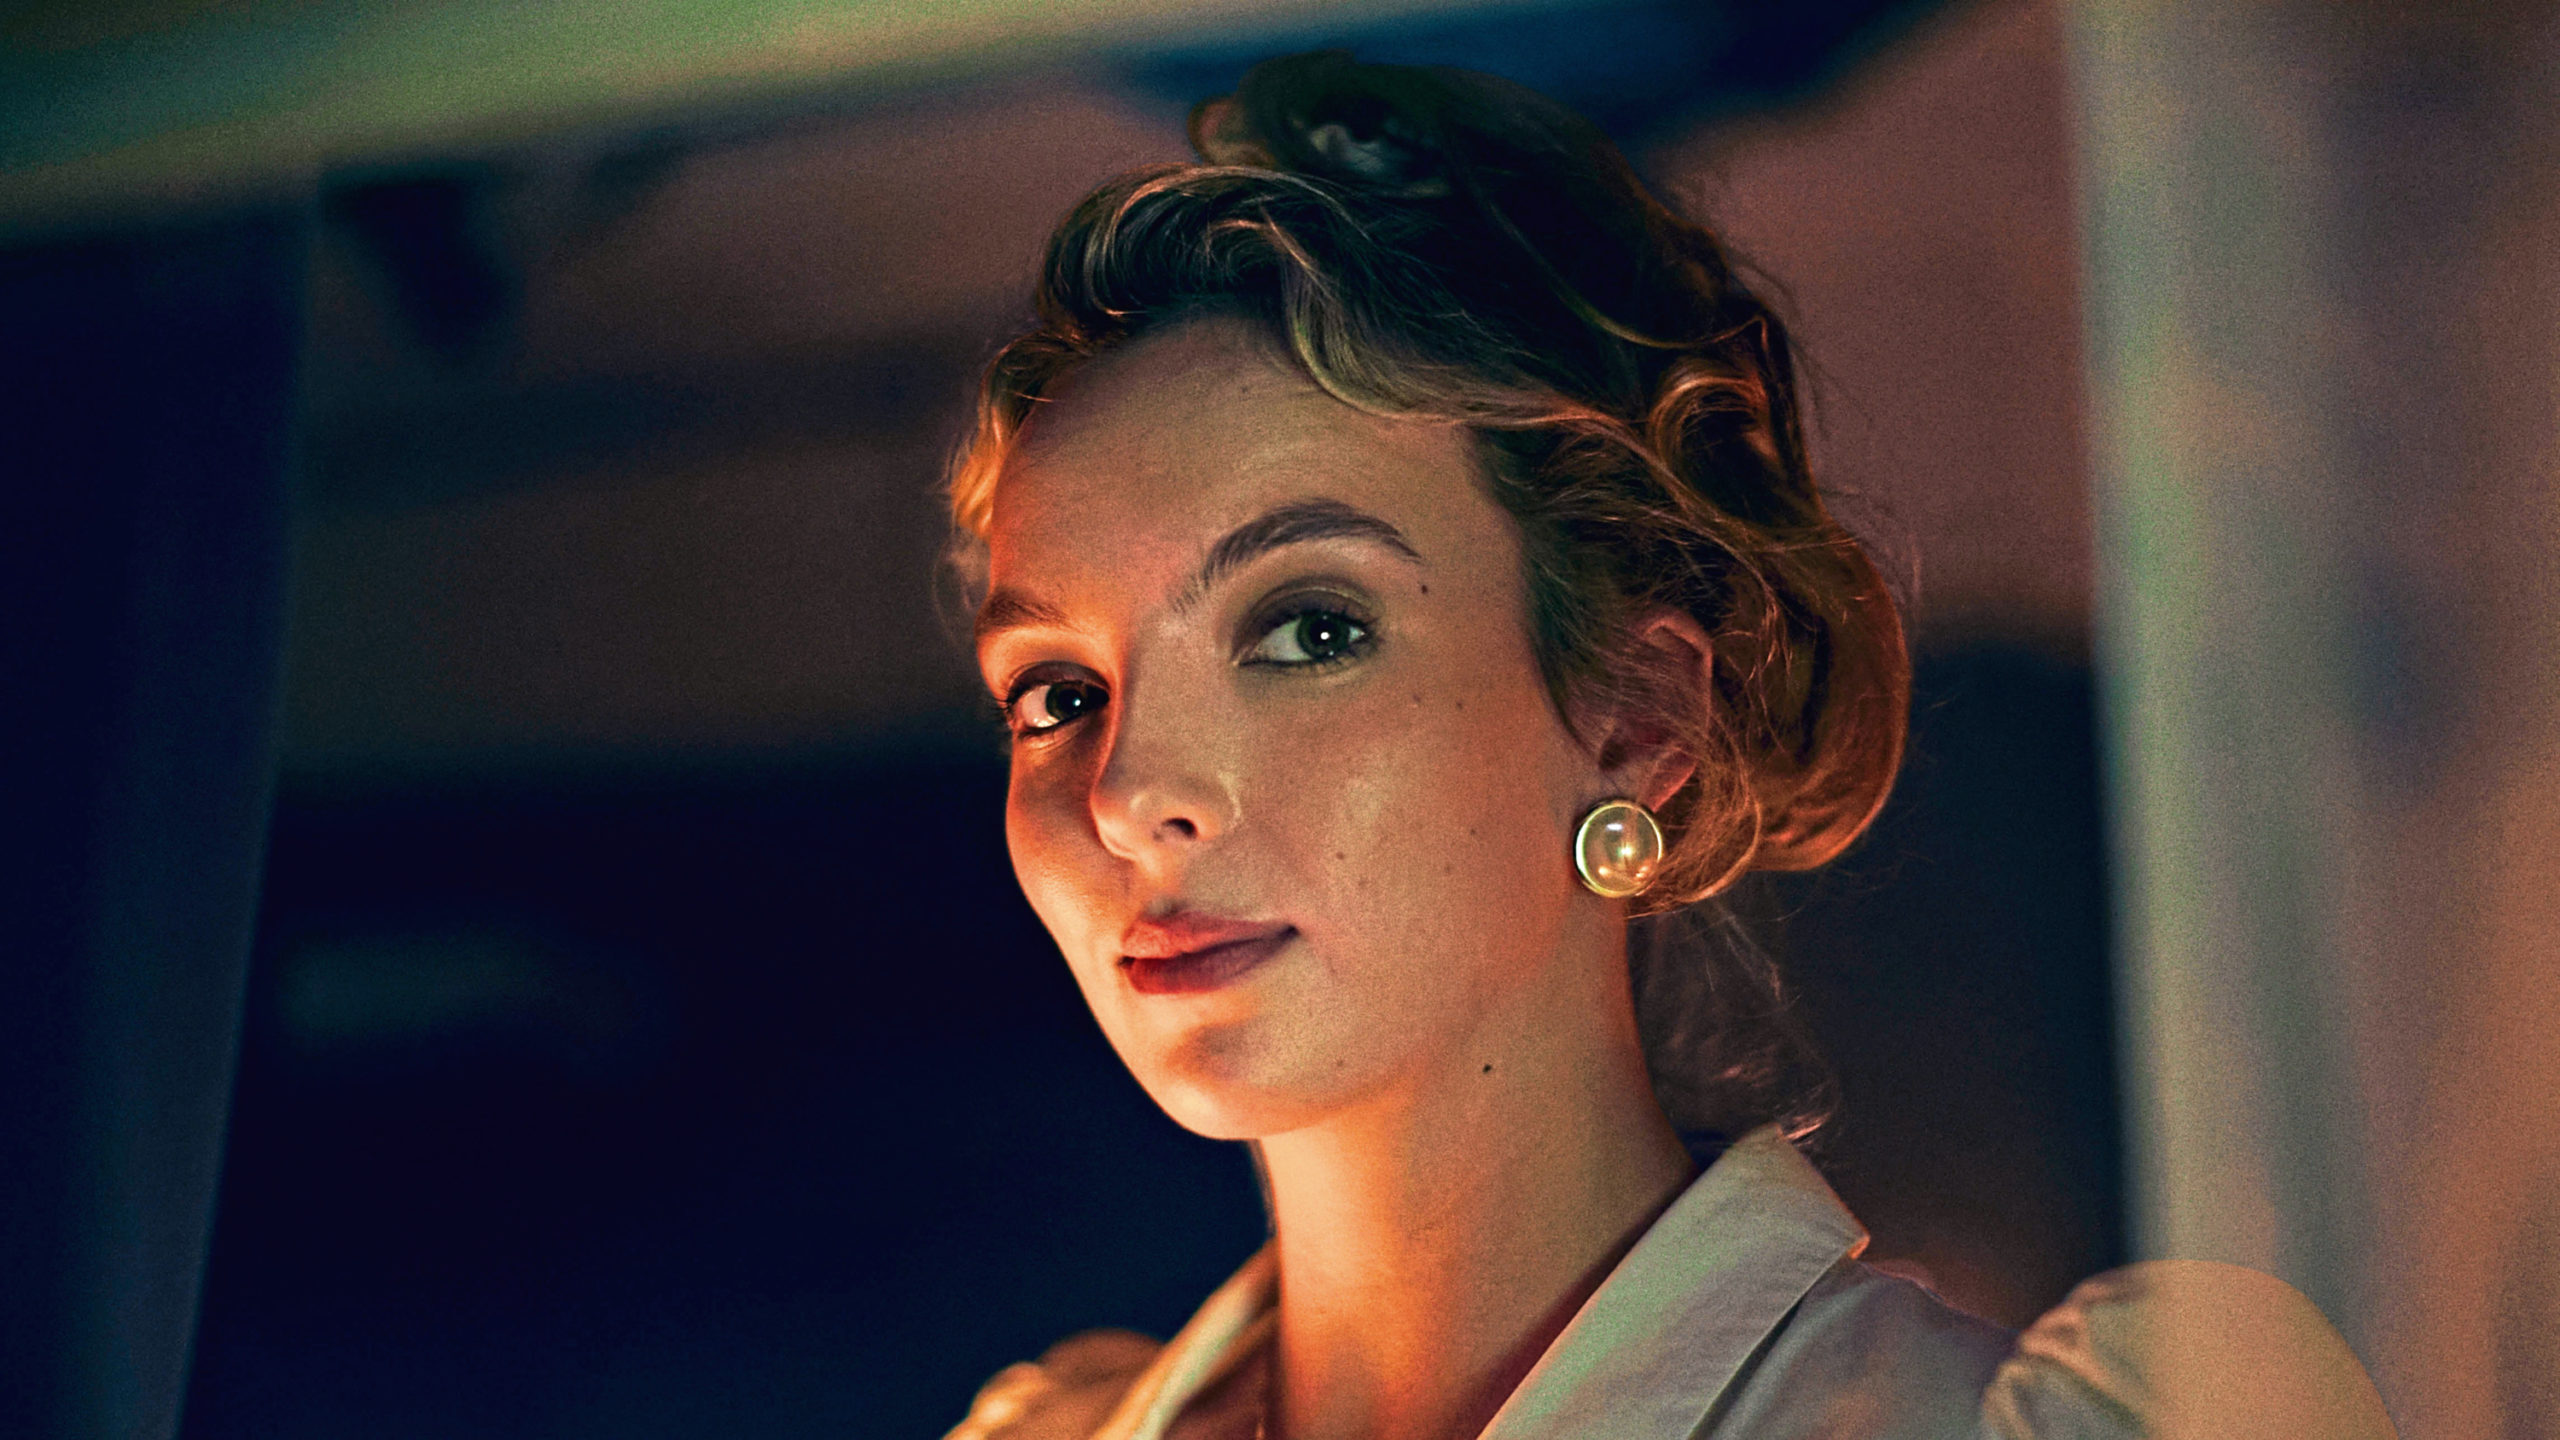 Jodie Comer takes on a role first played by Julie Andrews 32 years ago in Talking Heads